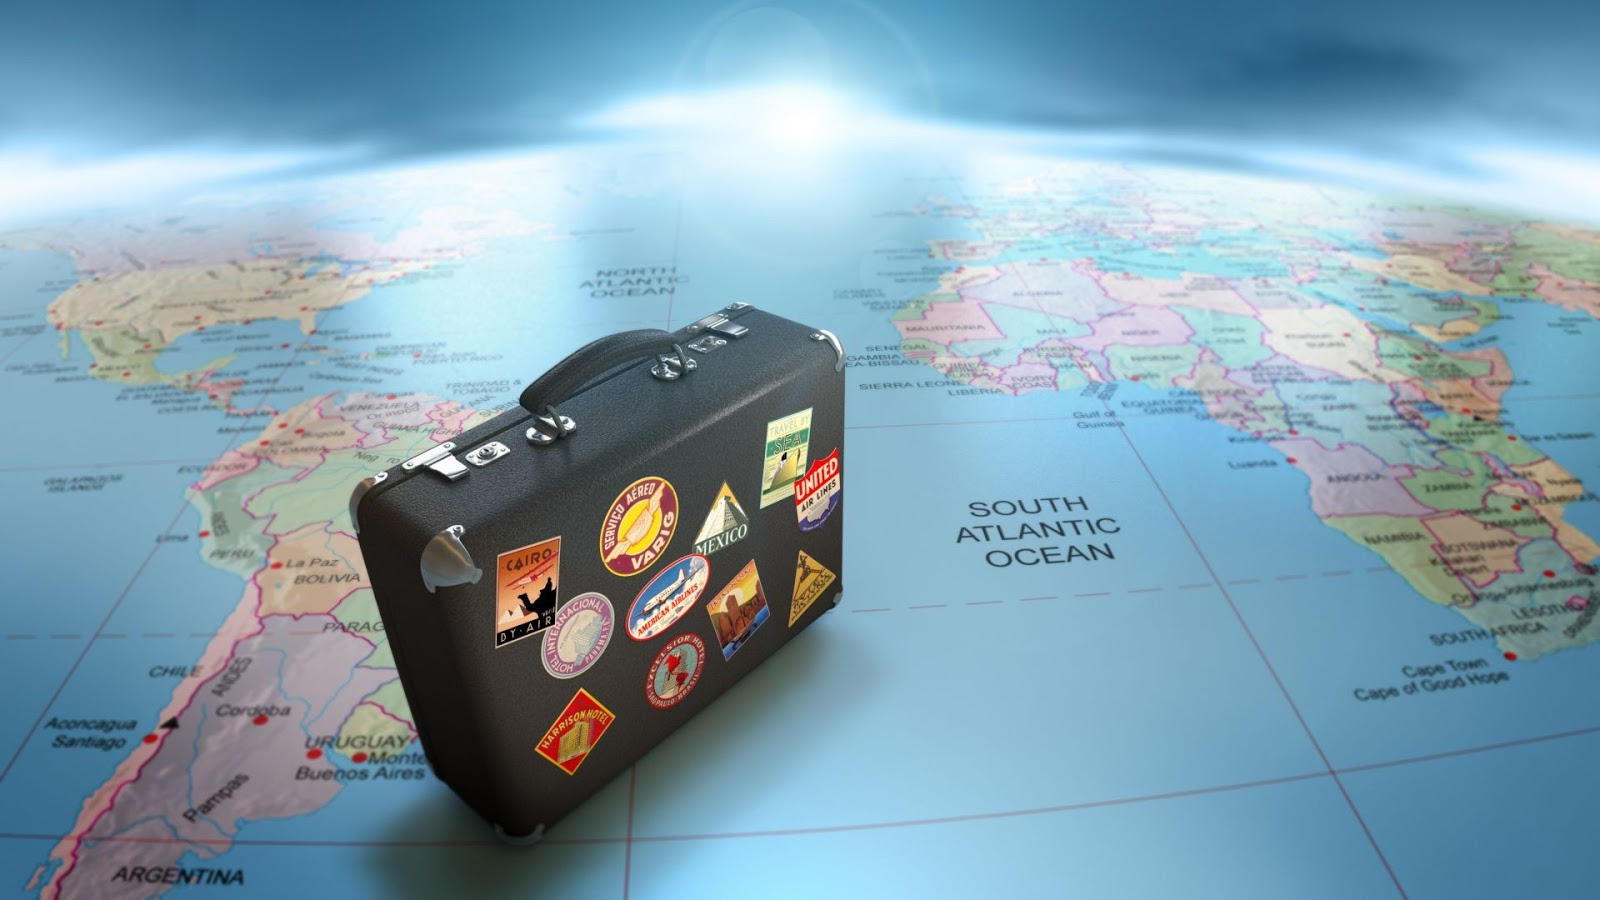 International Travel Medical Insurance Coverage